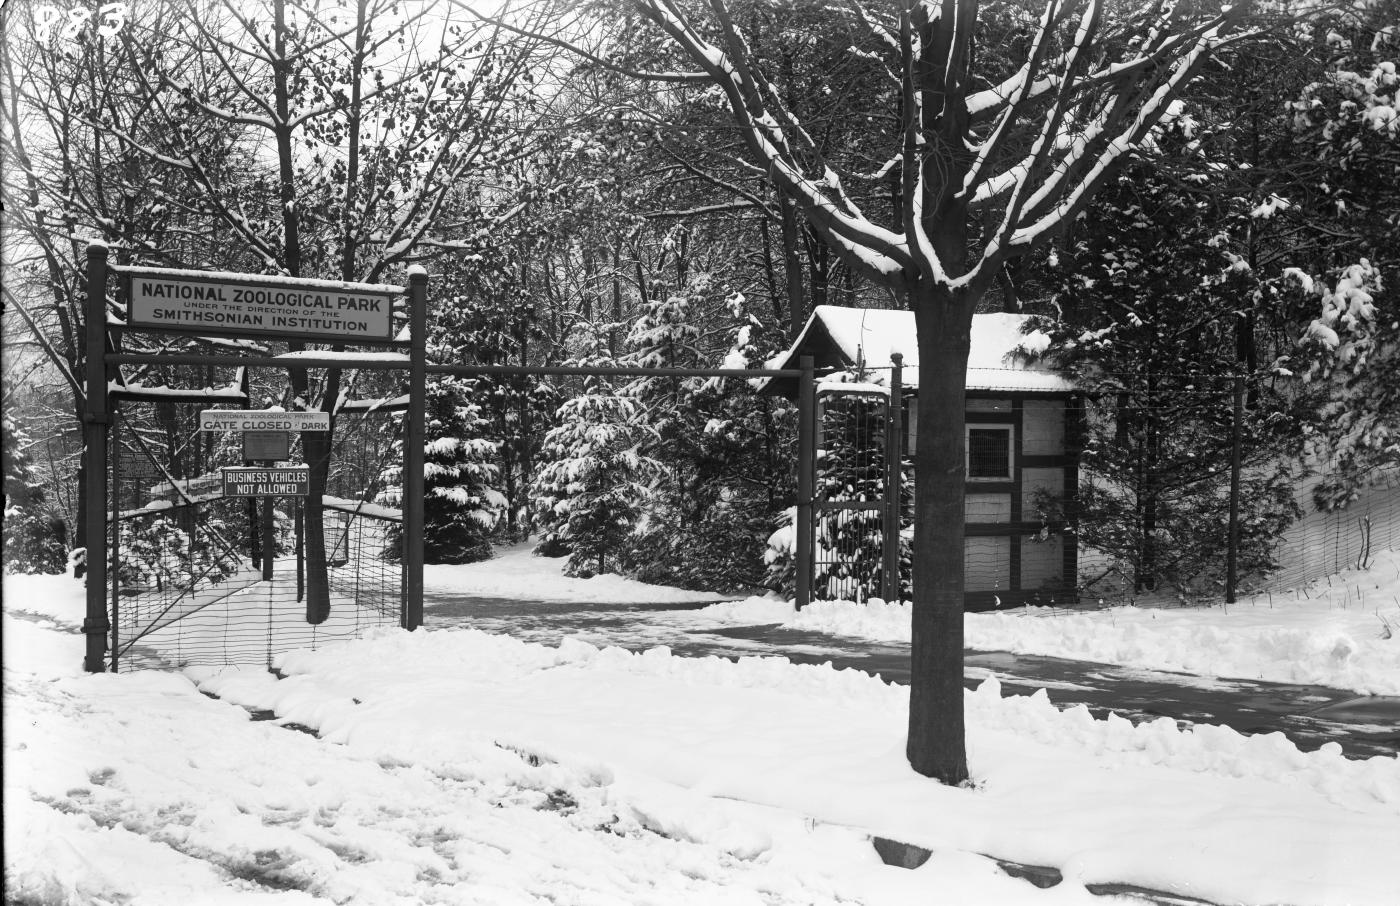 A black-and-white photo of the Adam's Mill Road entrance to the Smithsonian's National Zoo on a snowy day in 1910.